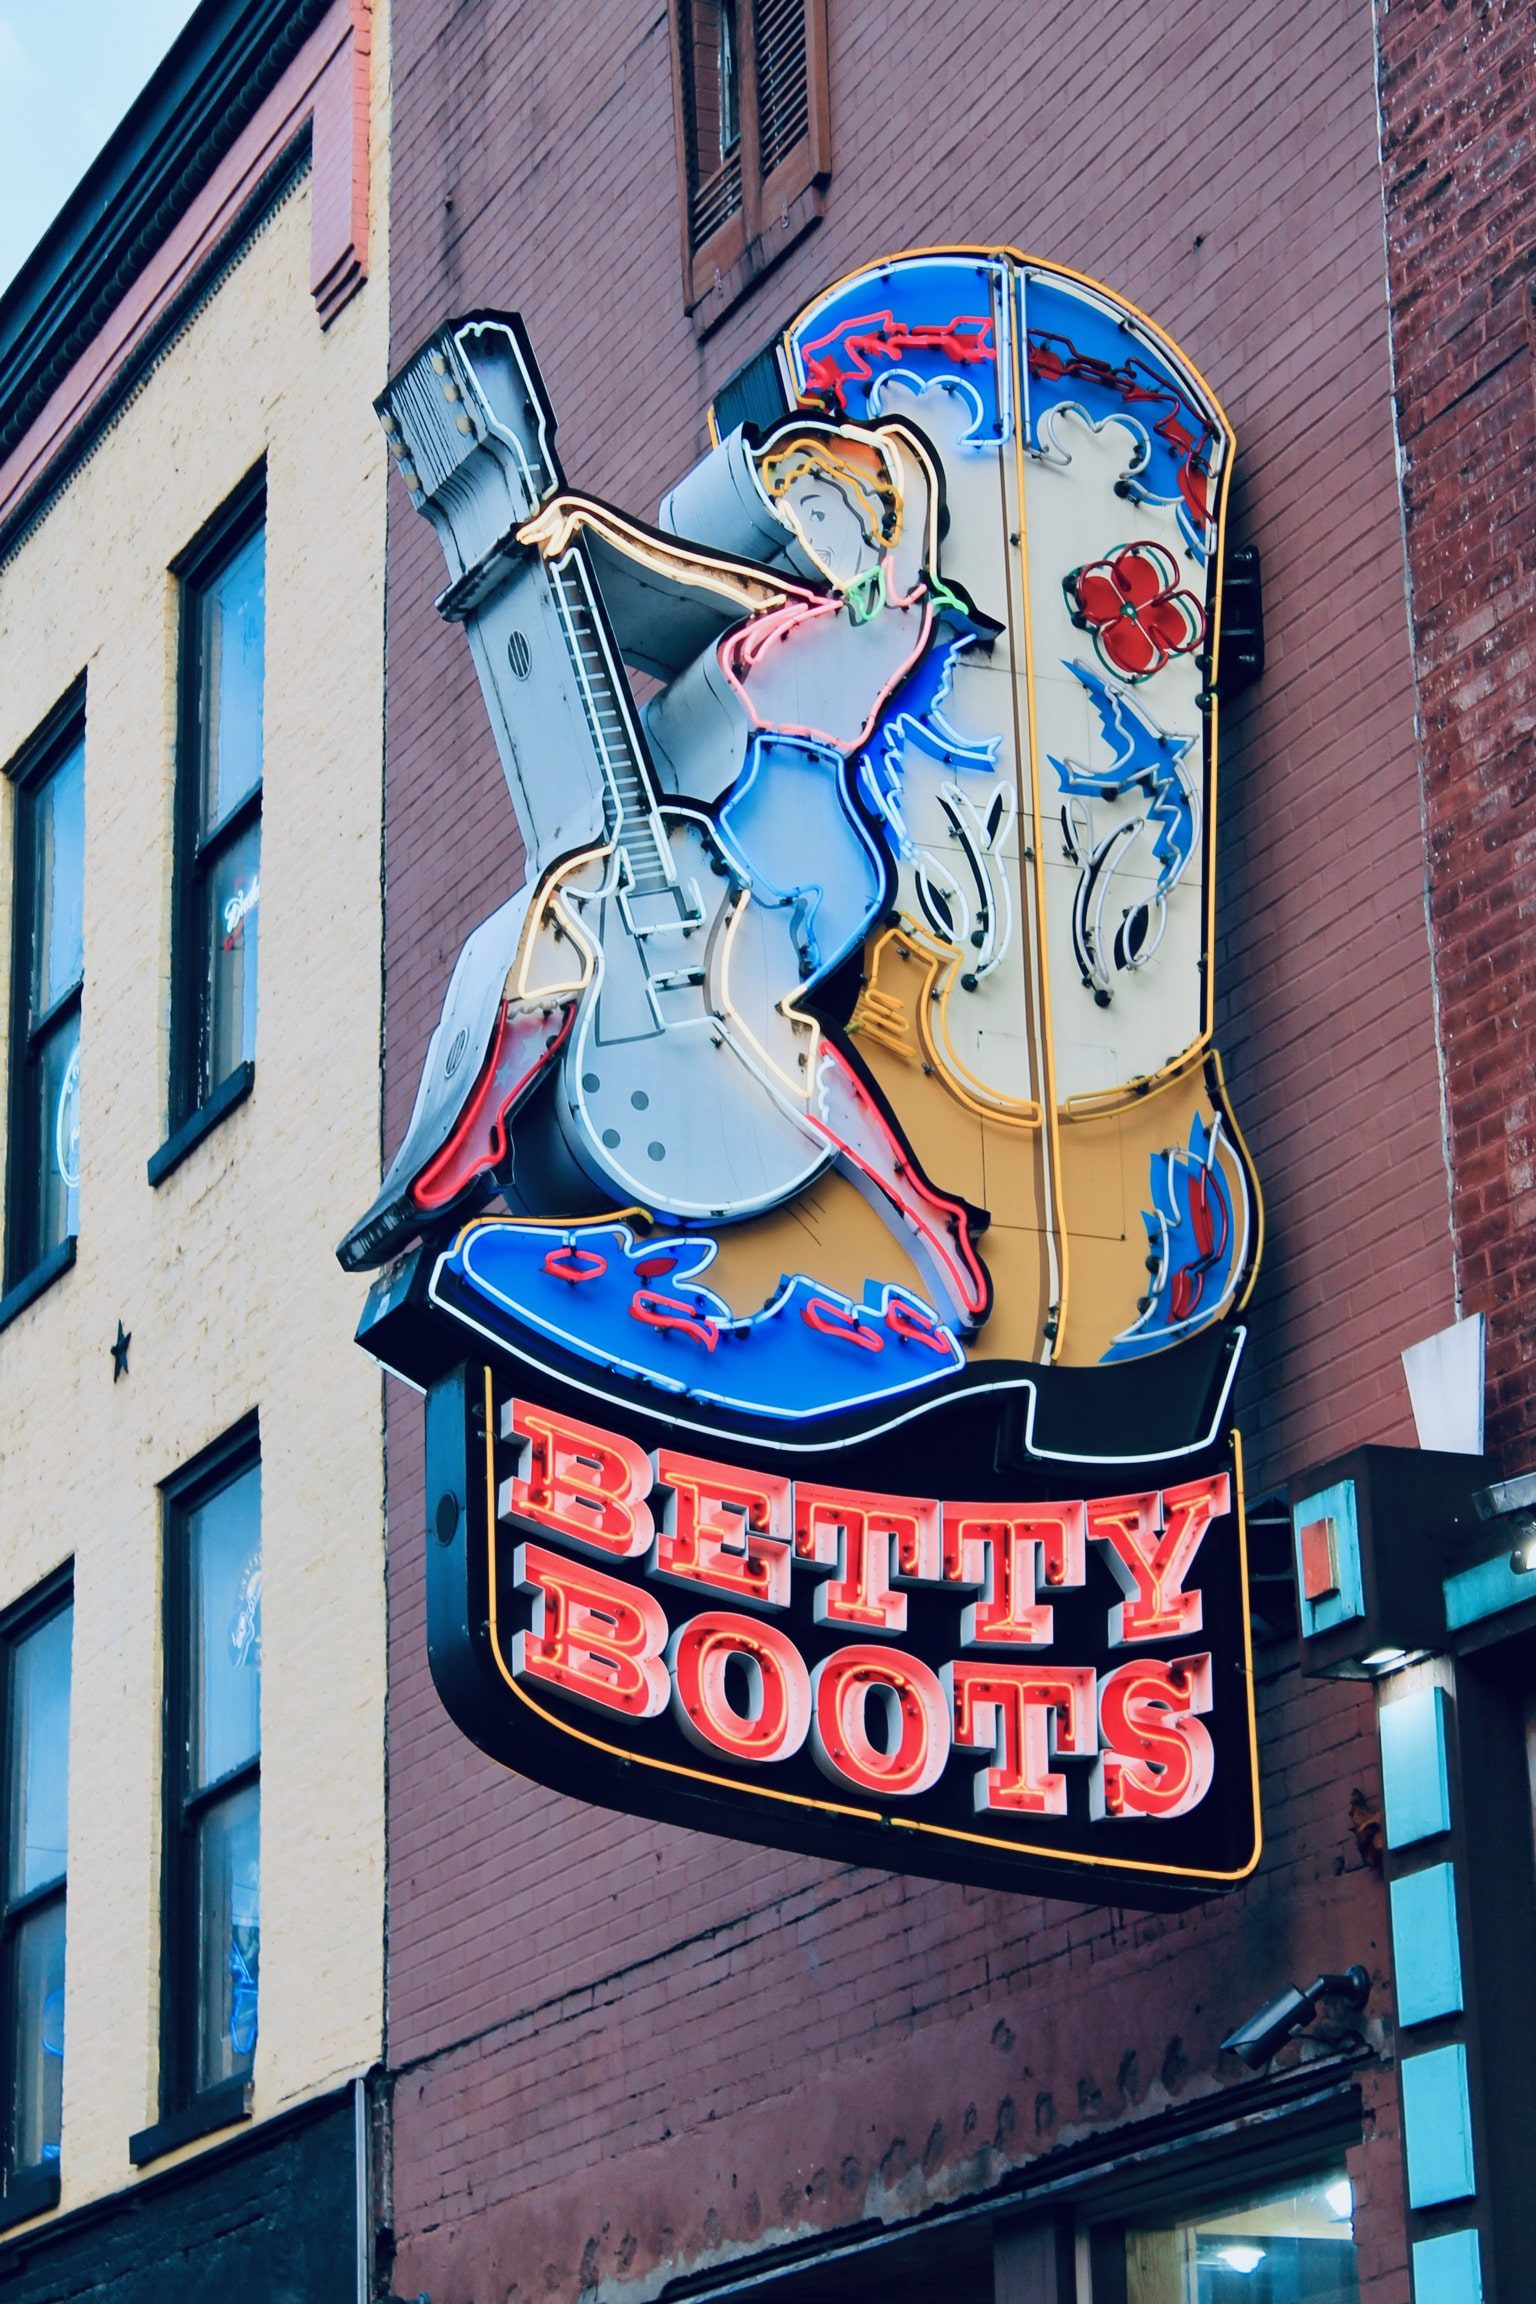 betty boots led sign with led conversion in Nashville